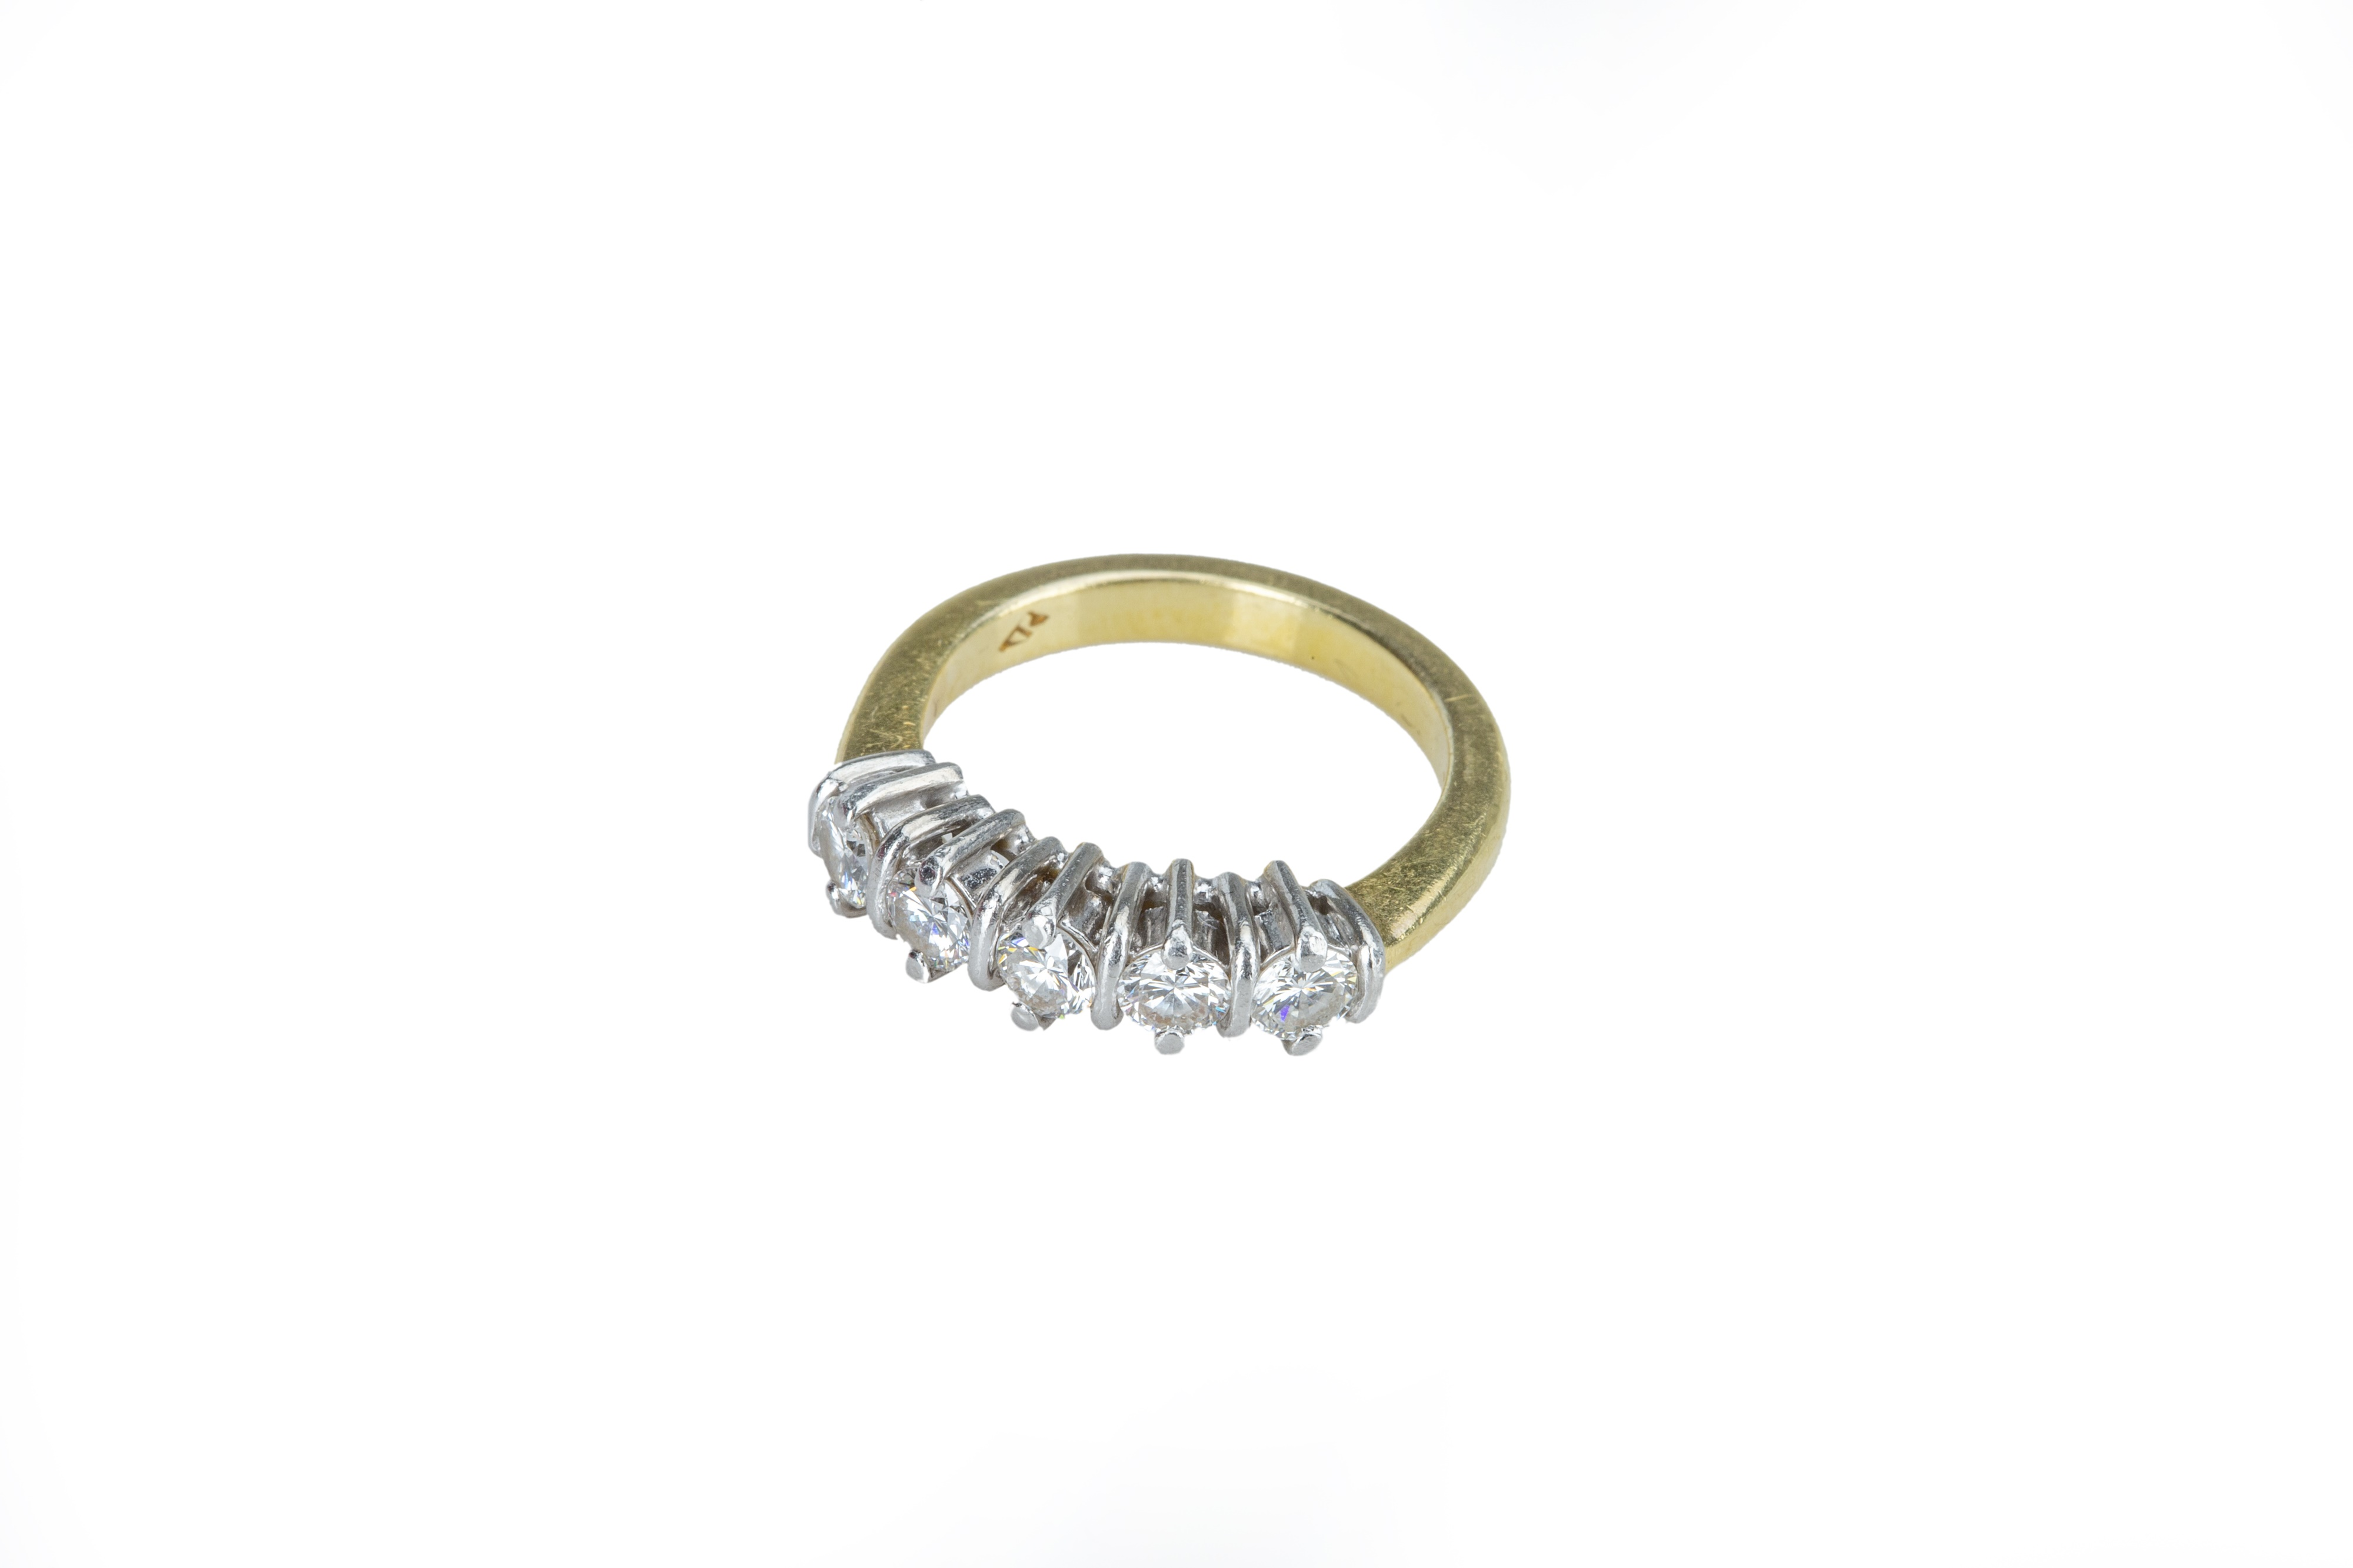 A five stone diamond ring - Image 2 of 5